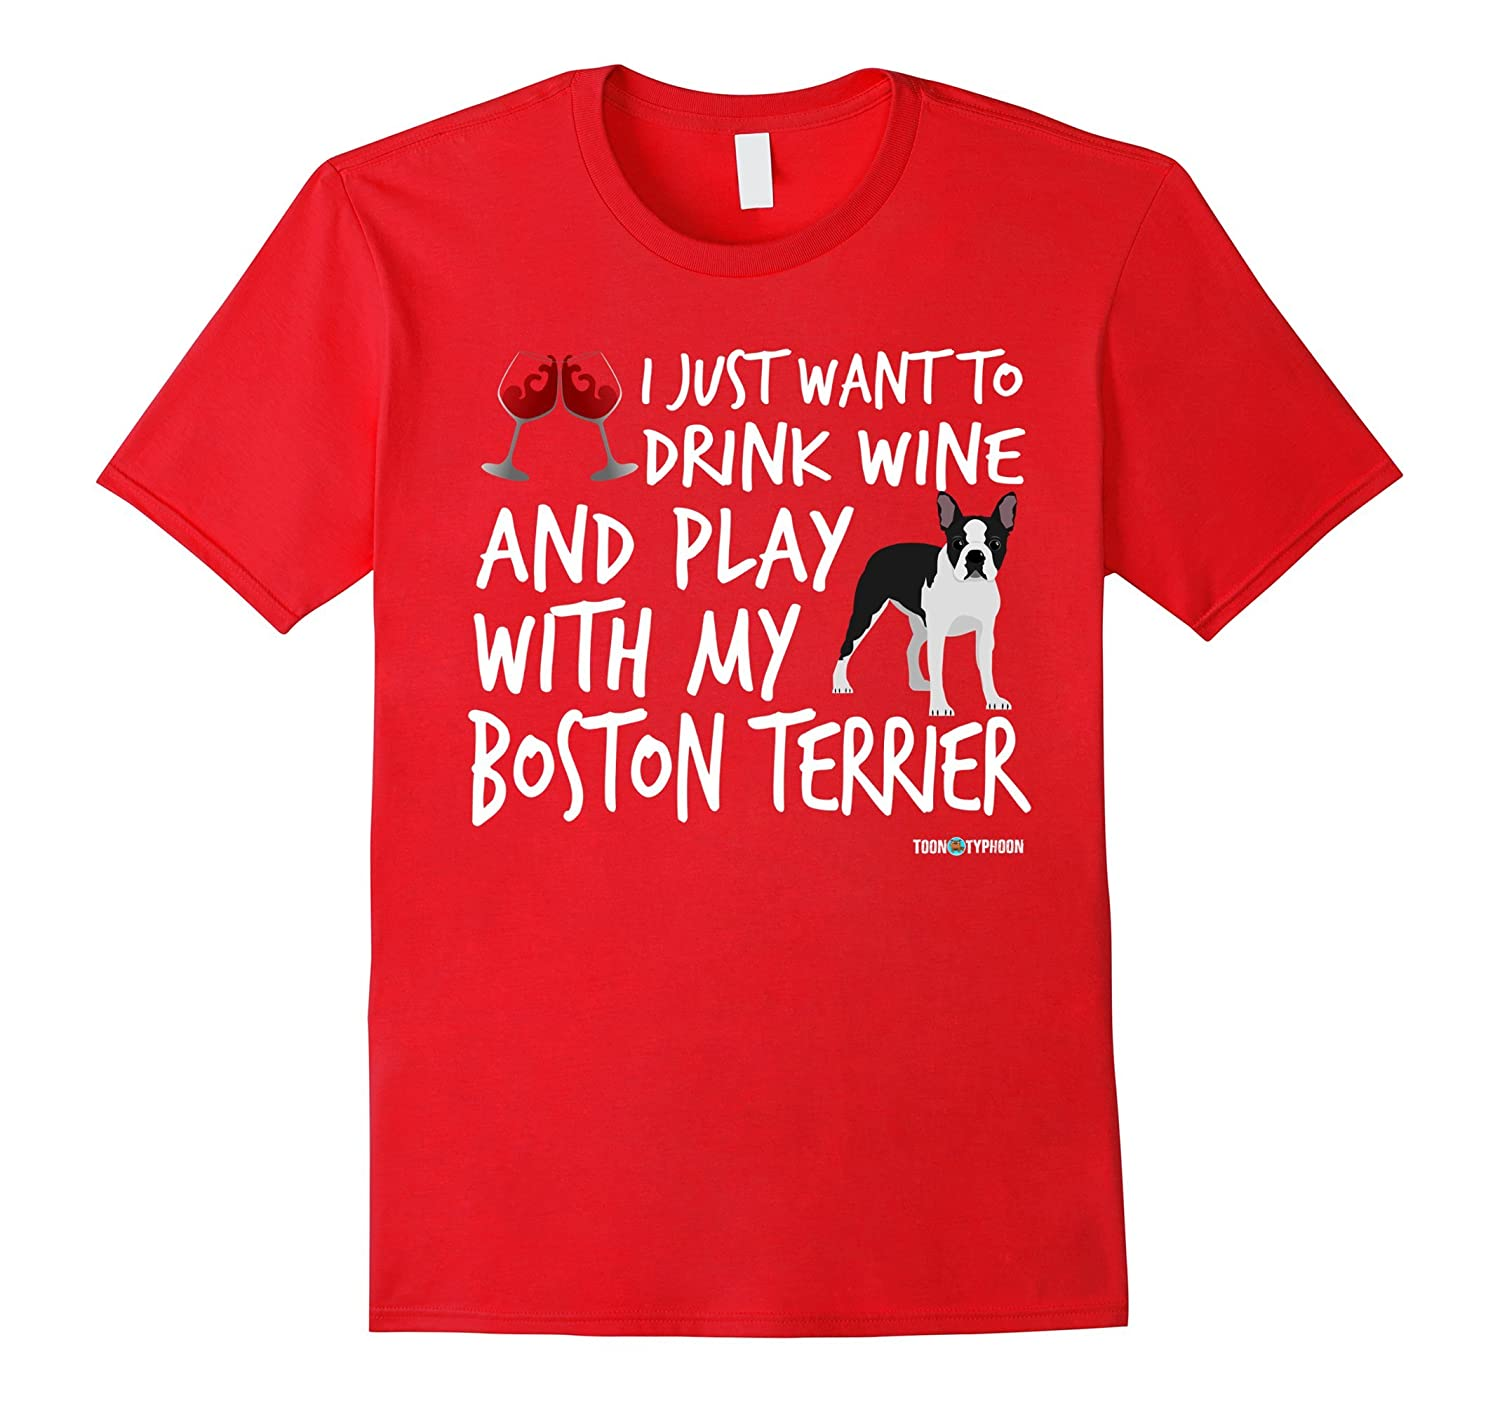 Boston Terrier Shirt  Drink wine and play with my-PL